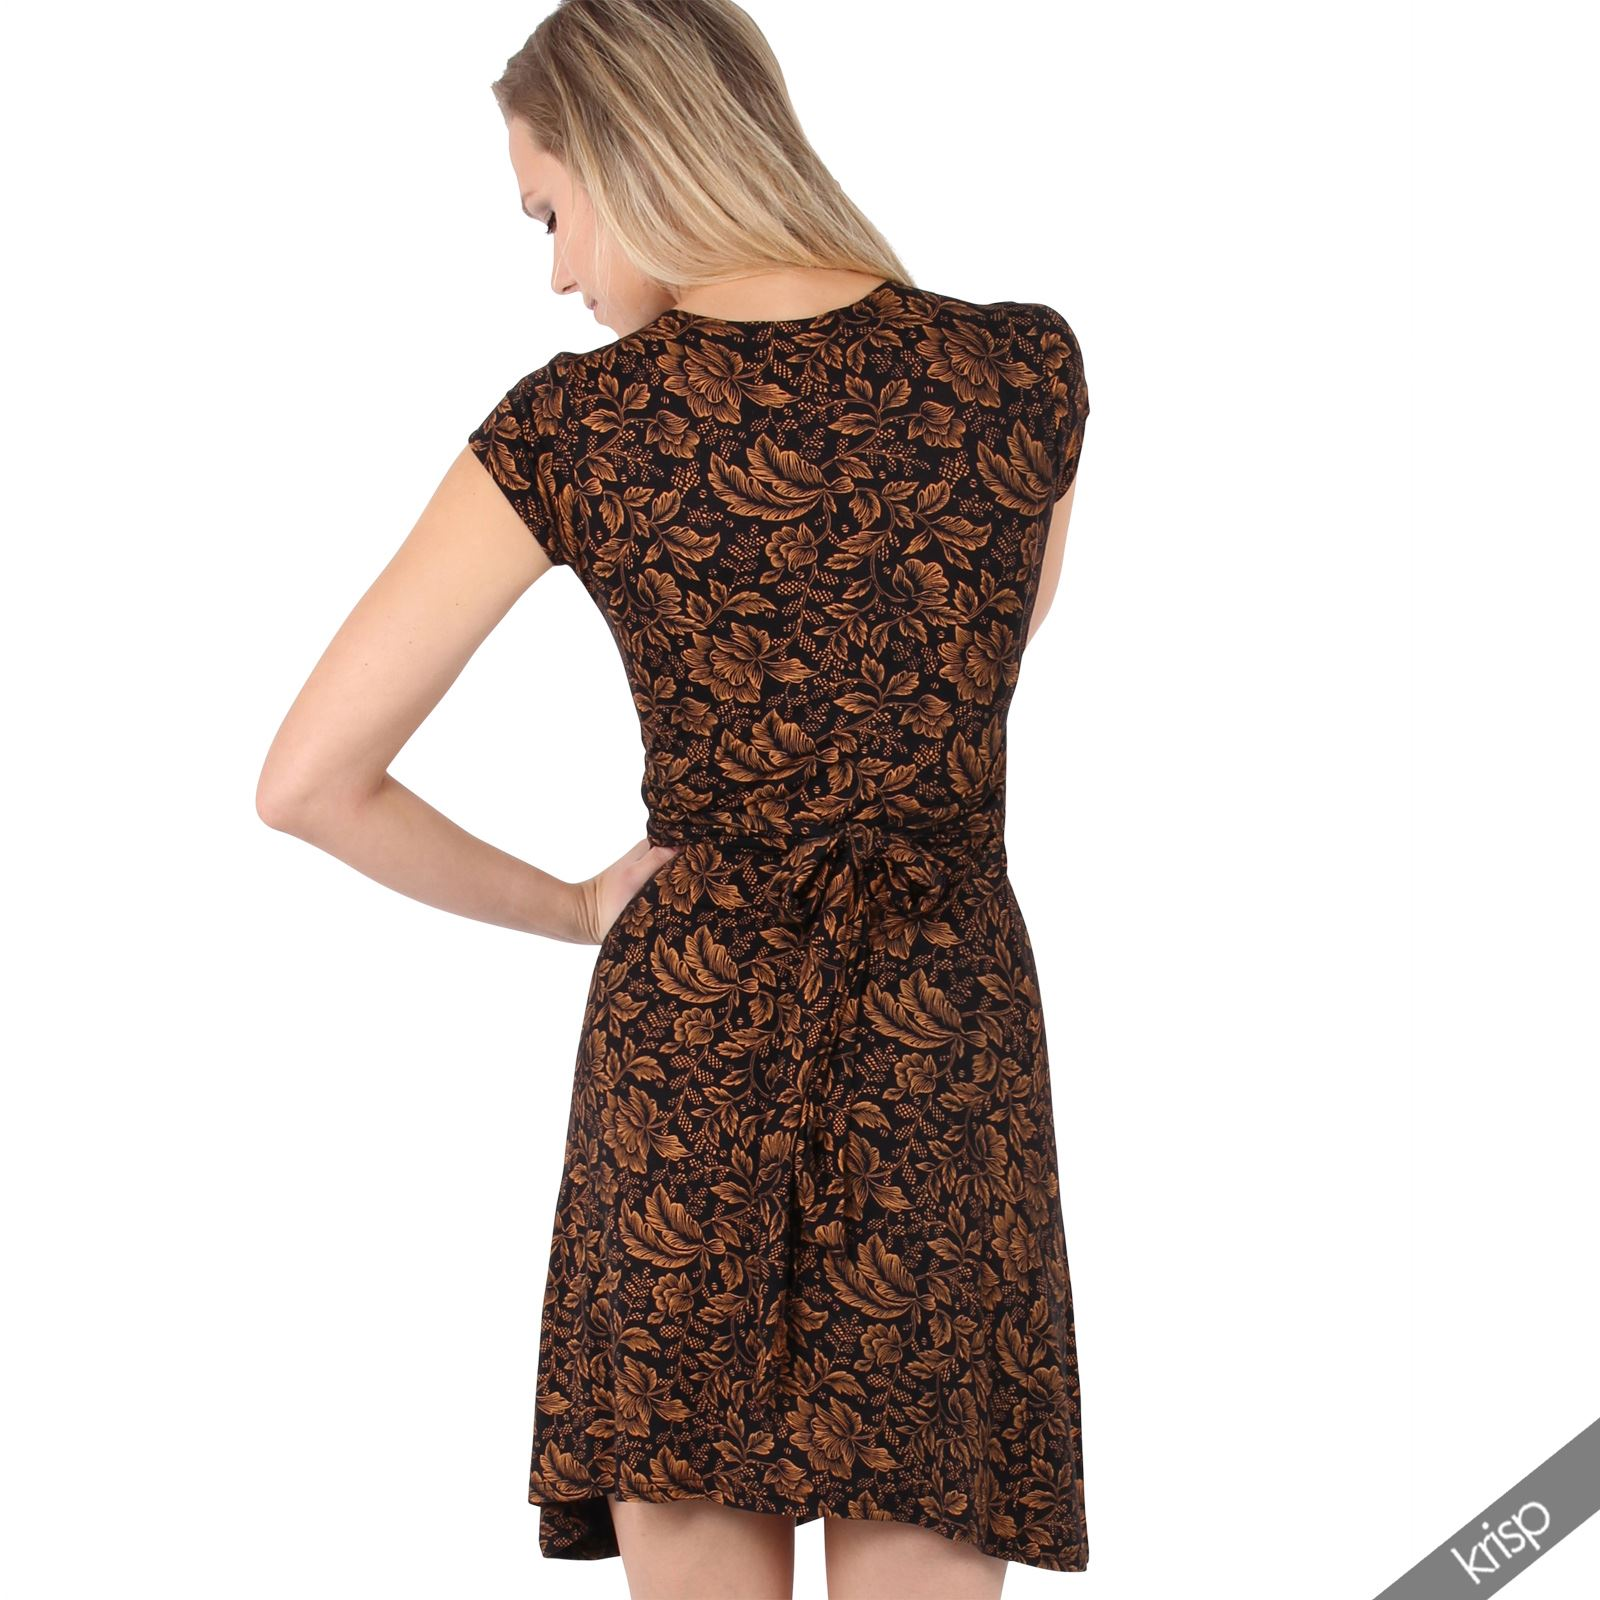 Womens-Ladies-V-Neck-Mini-Midi-Dress-Floral-Print-Knot-Short-Skirt-Party-Casual thumbnail 11